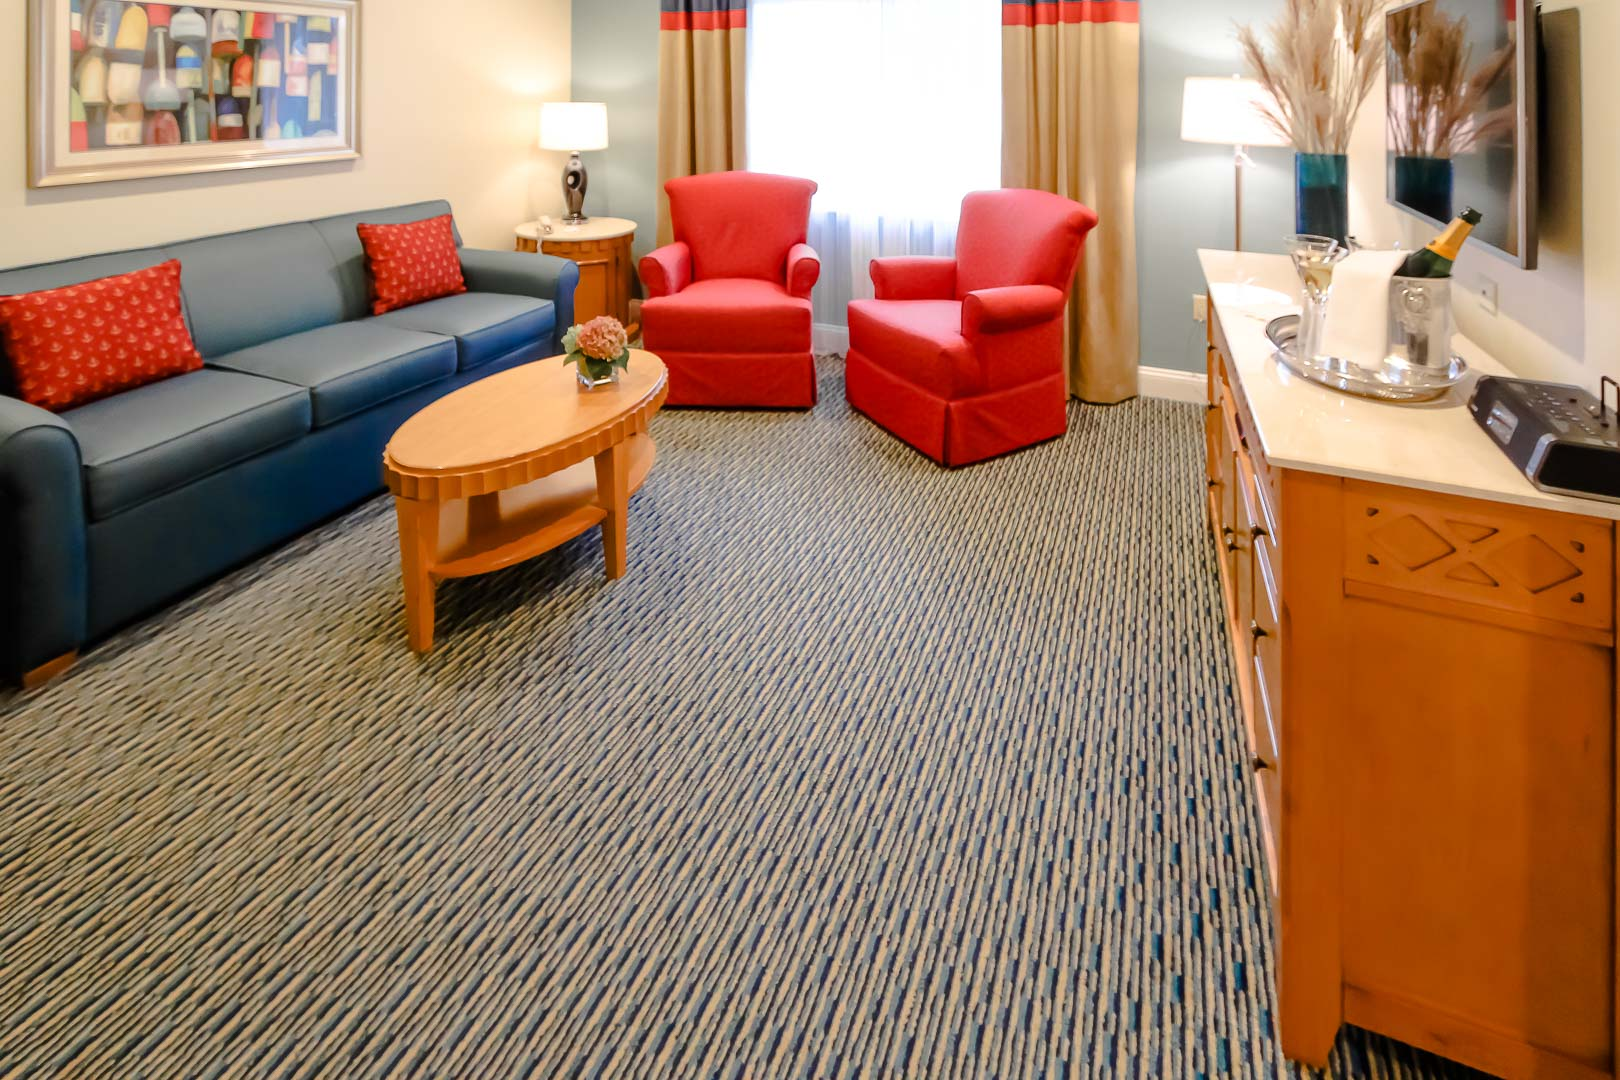 A vibrant living room area at VRI's The Cove at Yarmouth in Massachusetts.